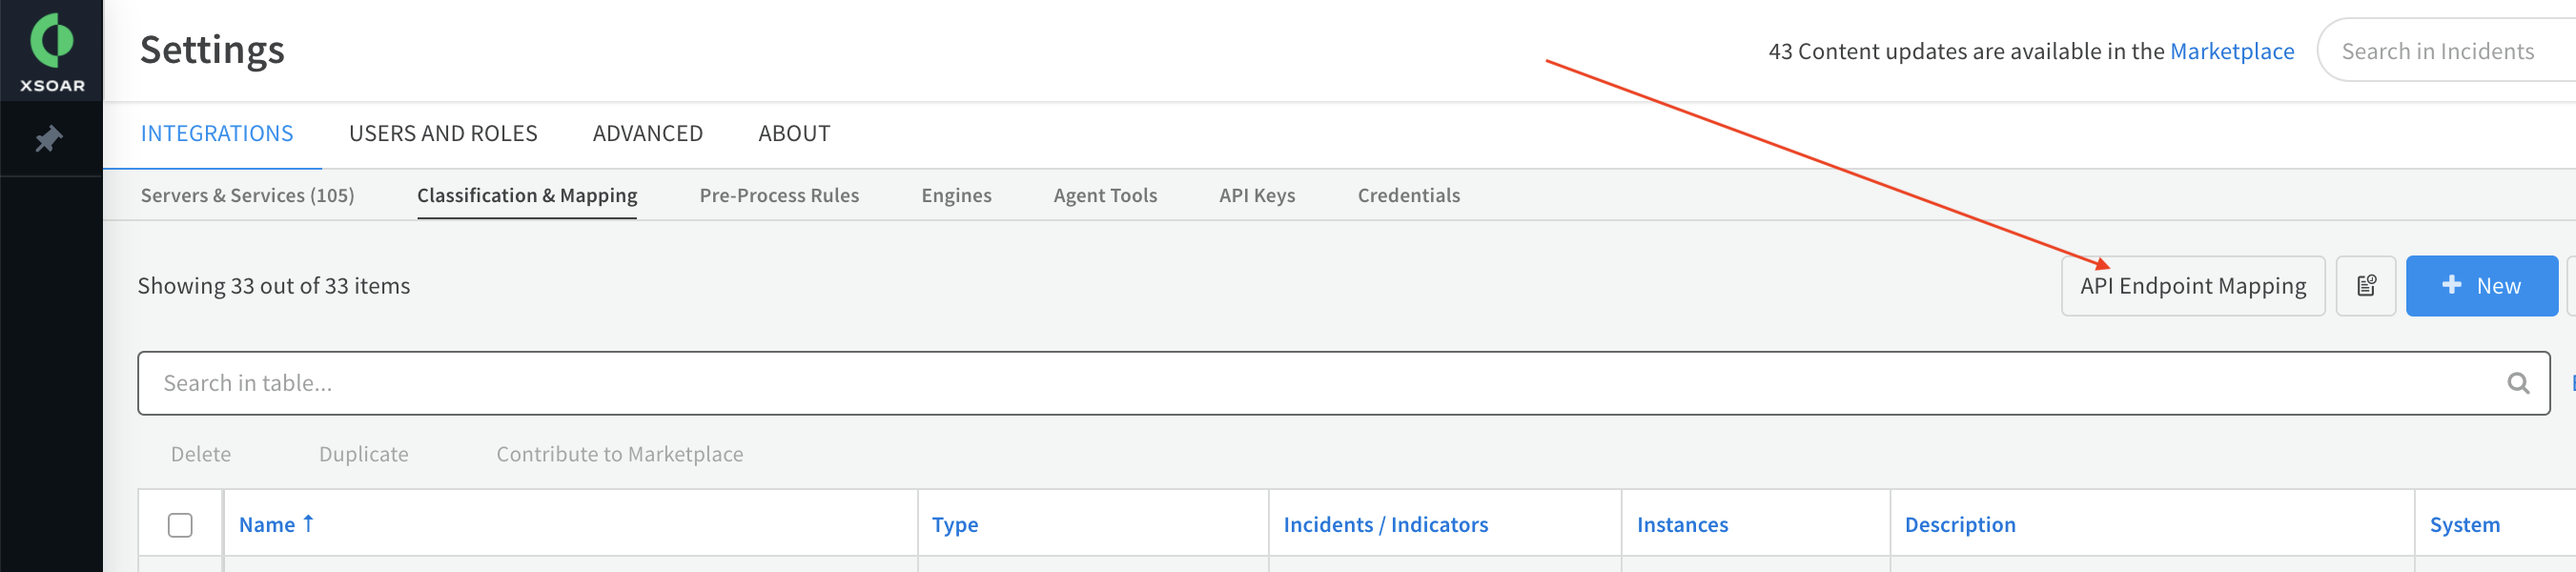 API Endpoint Mapping Button